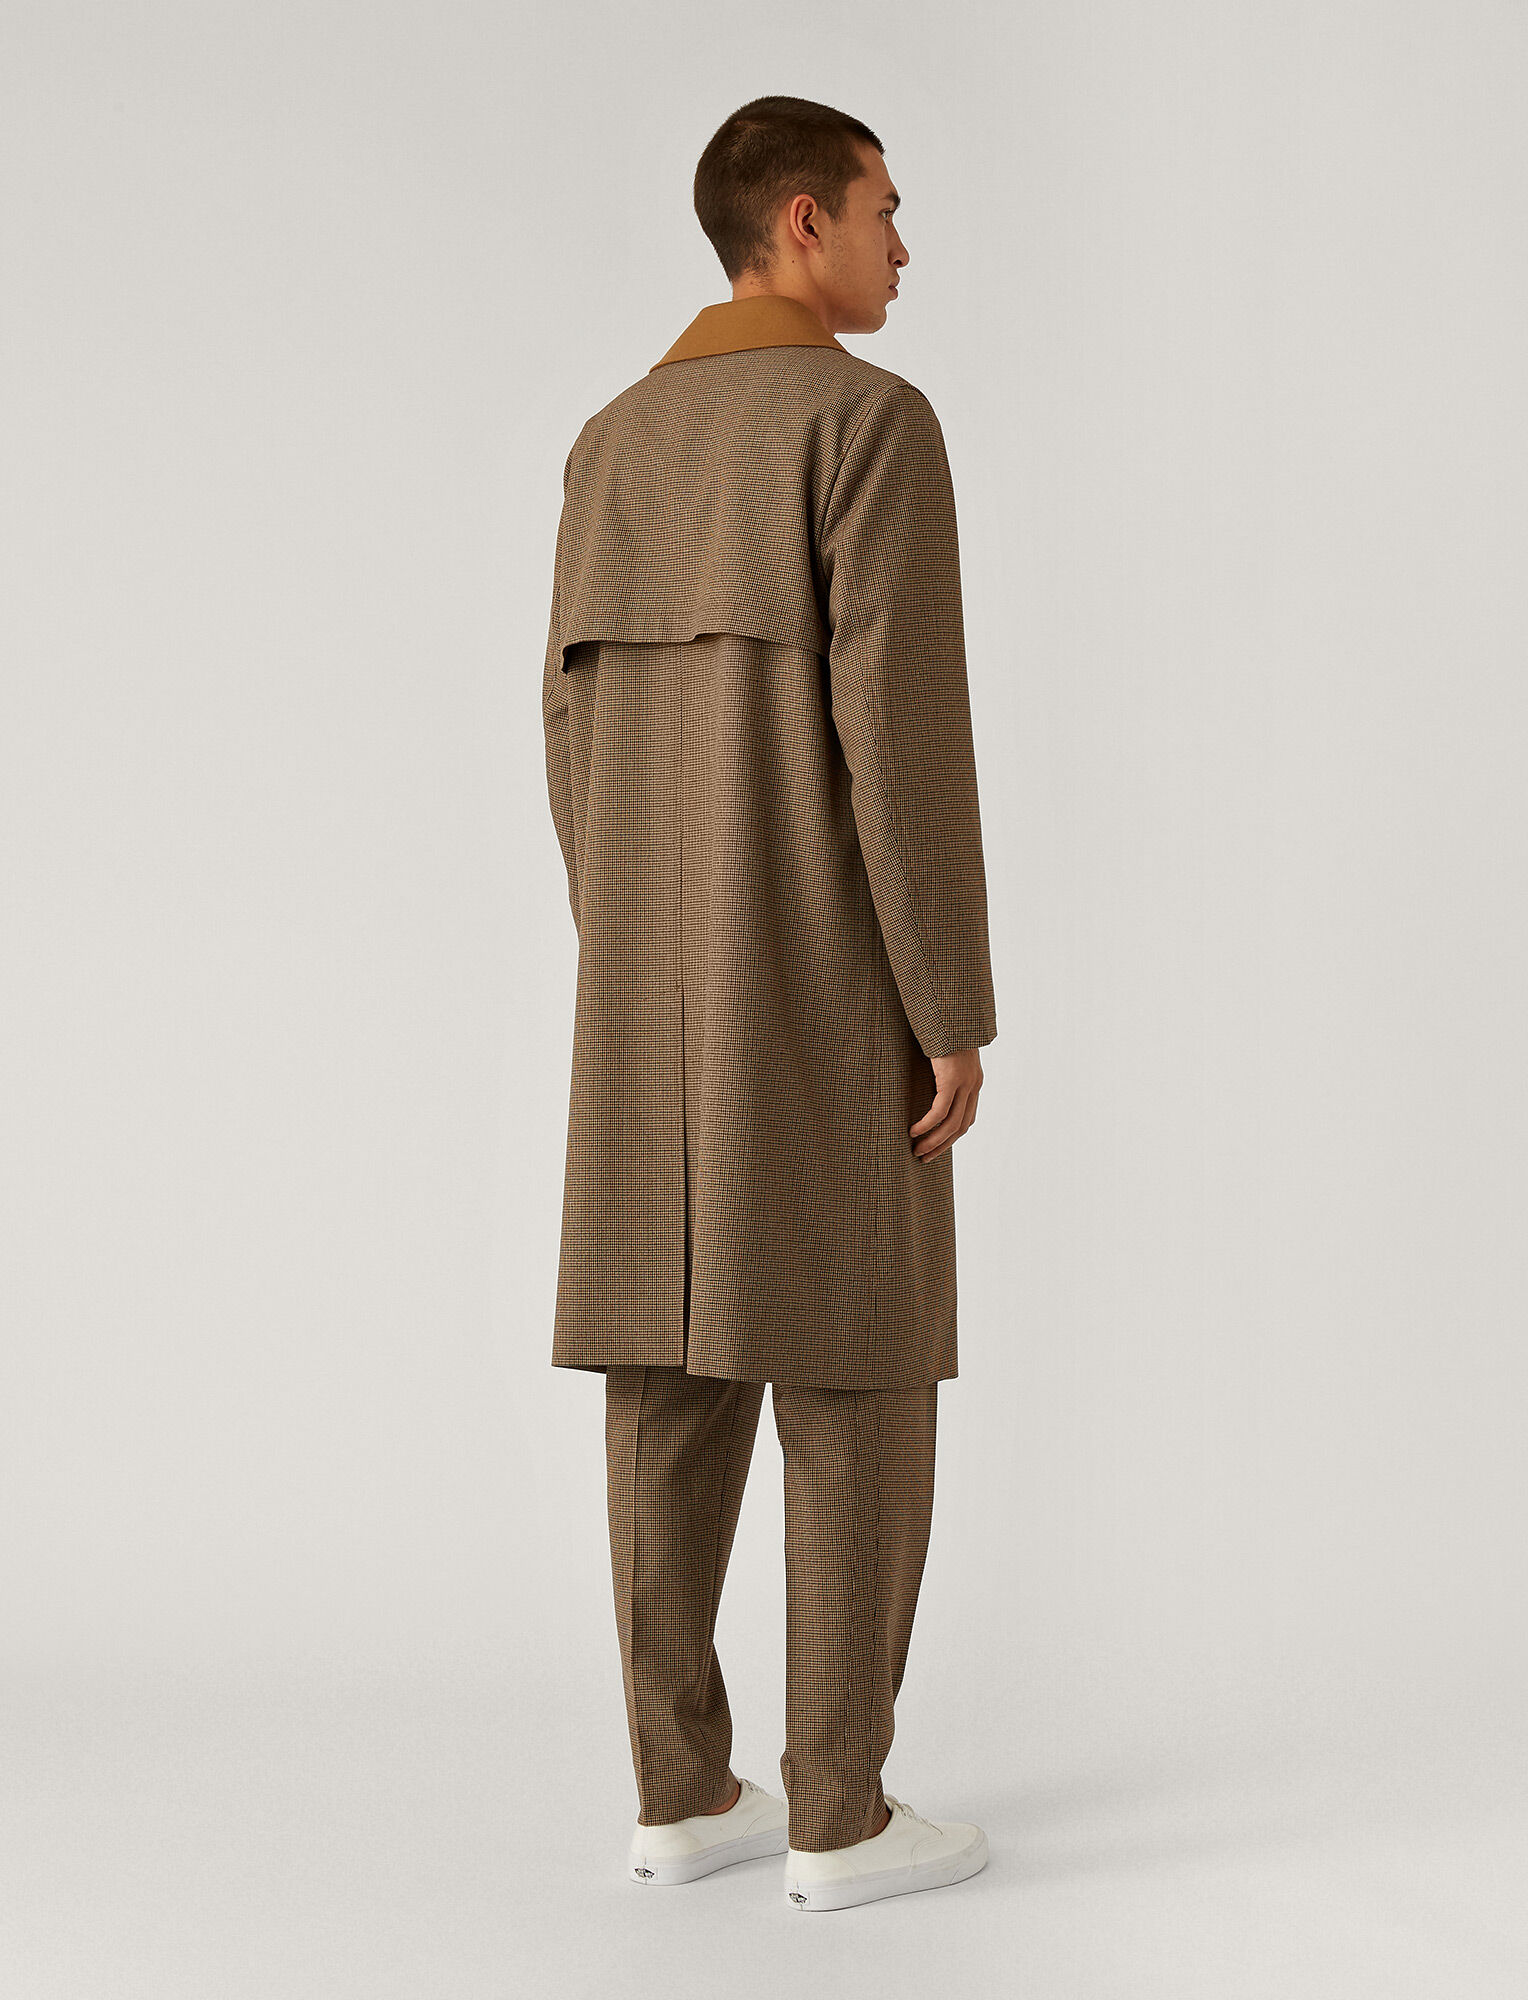 Joseph, Covert Cloth Combi Coat, in Bronze